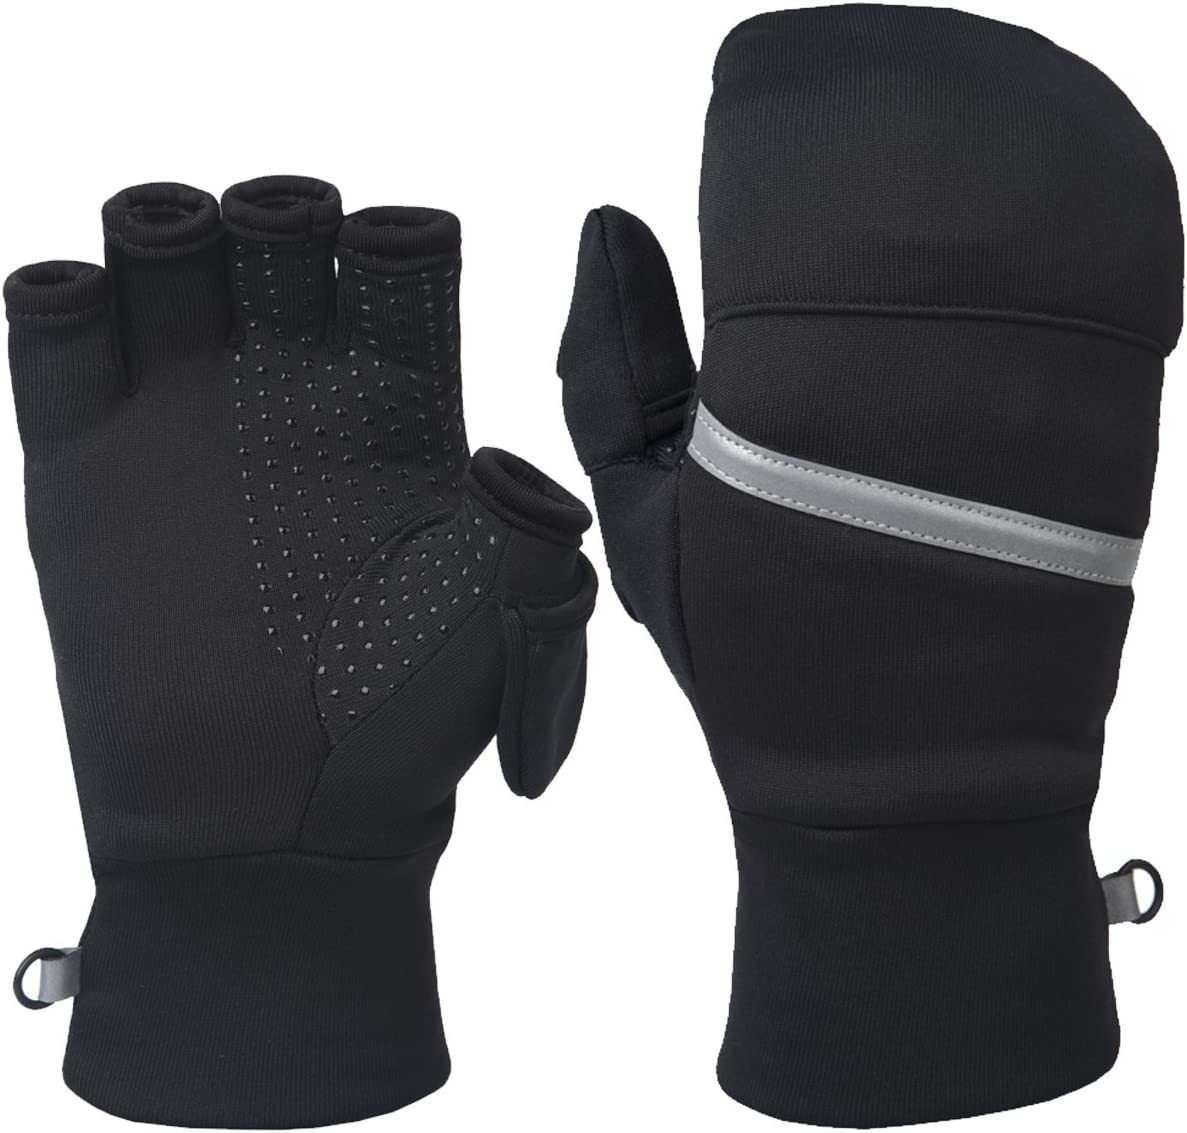 TrailHeads Power Stretch Convertible Mittens - Women's Fingerless Gloves: Clothing